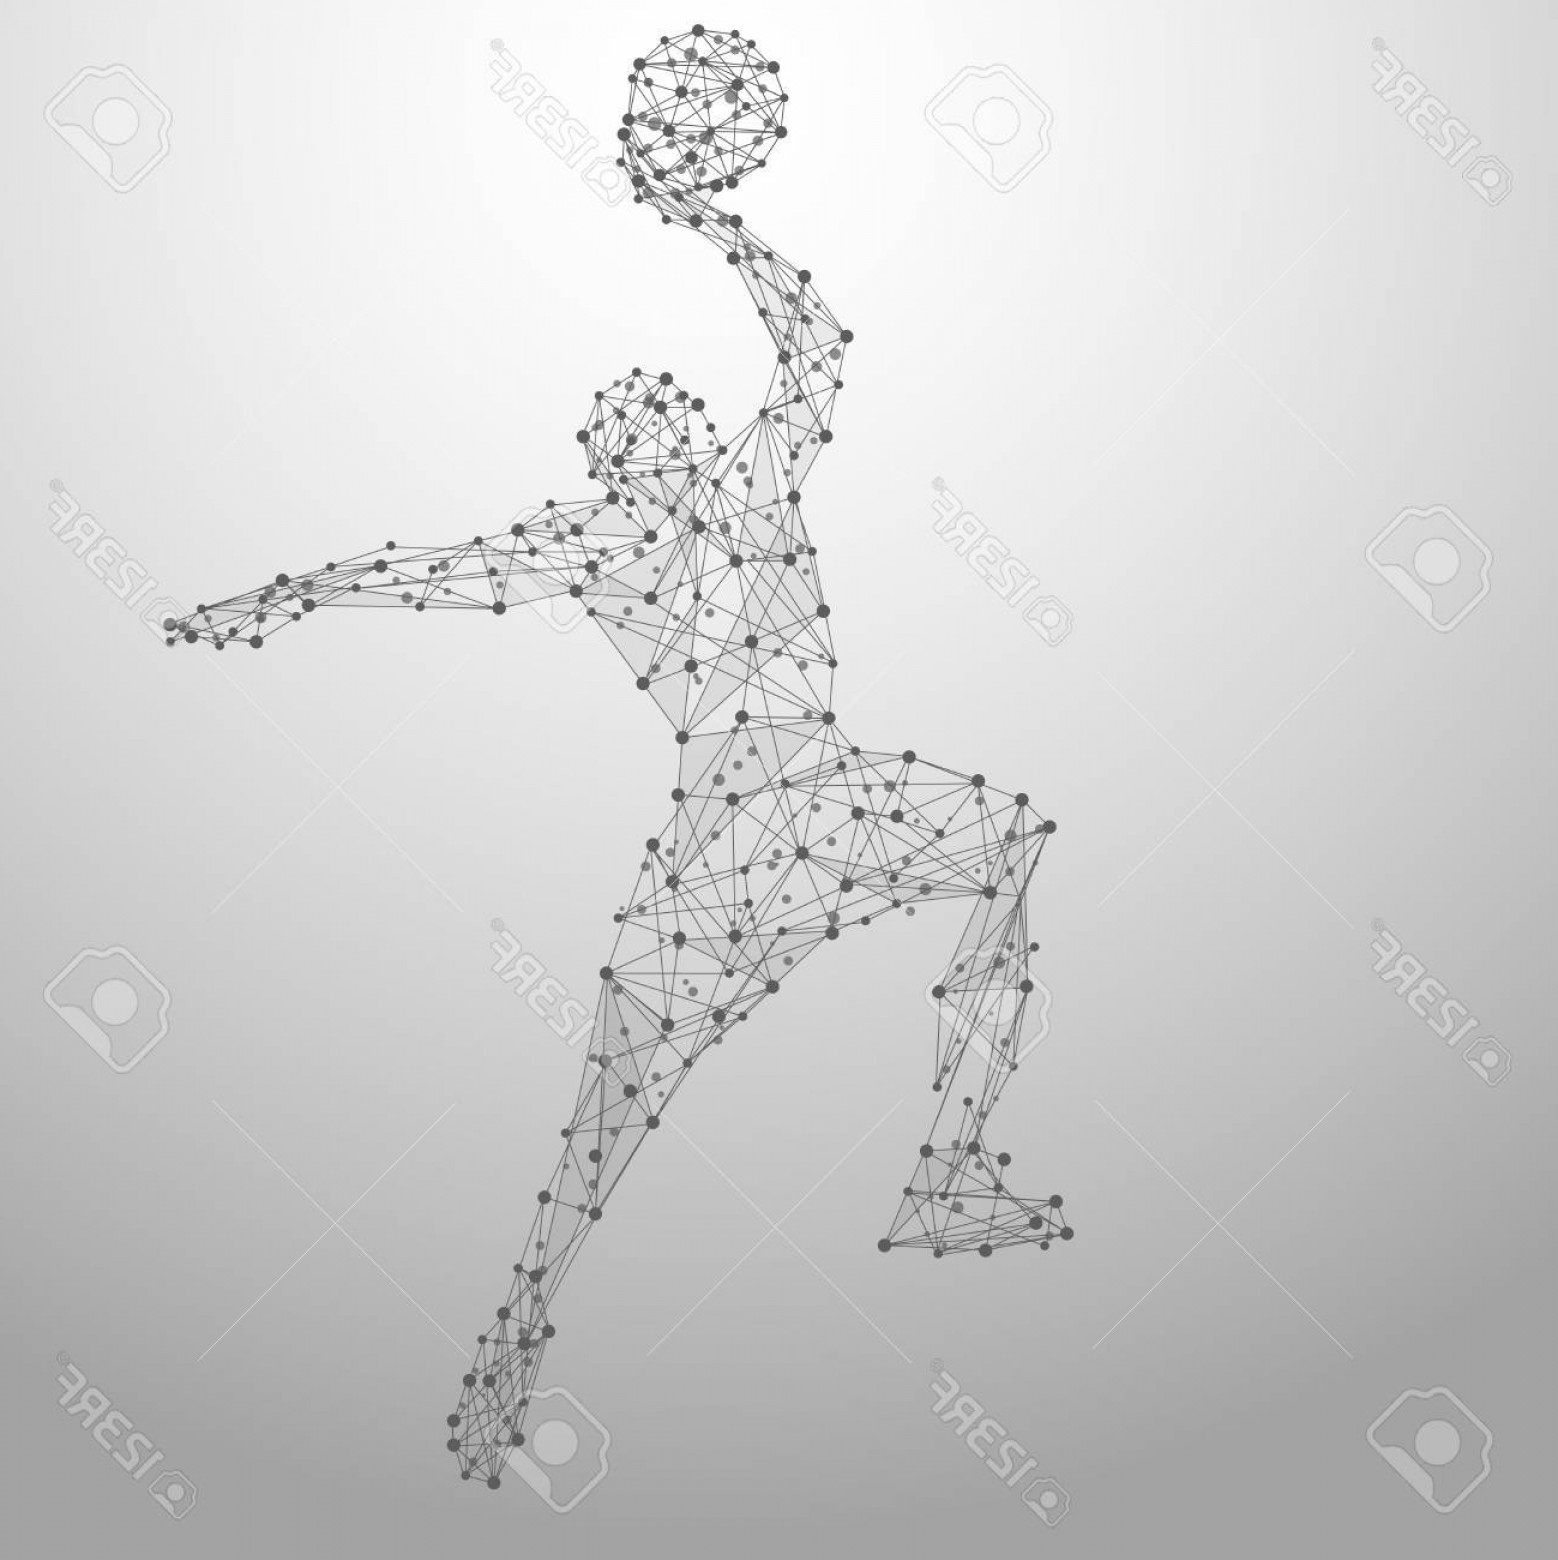 Motion Basketball Vector: Photostock Vector Thin Line Basketball Player In Motion From Blue Polygonal Basketball Player Jumping With The Ball Ab